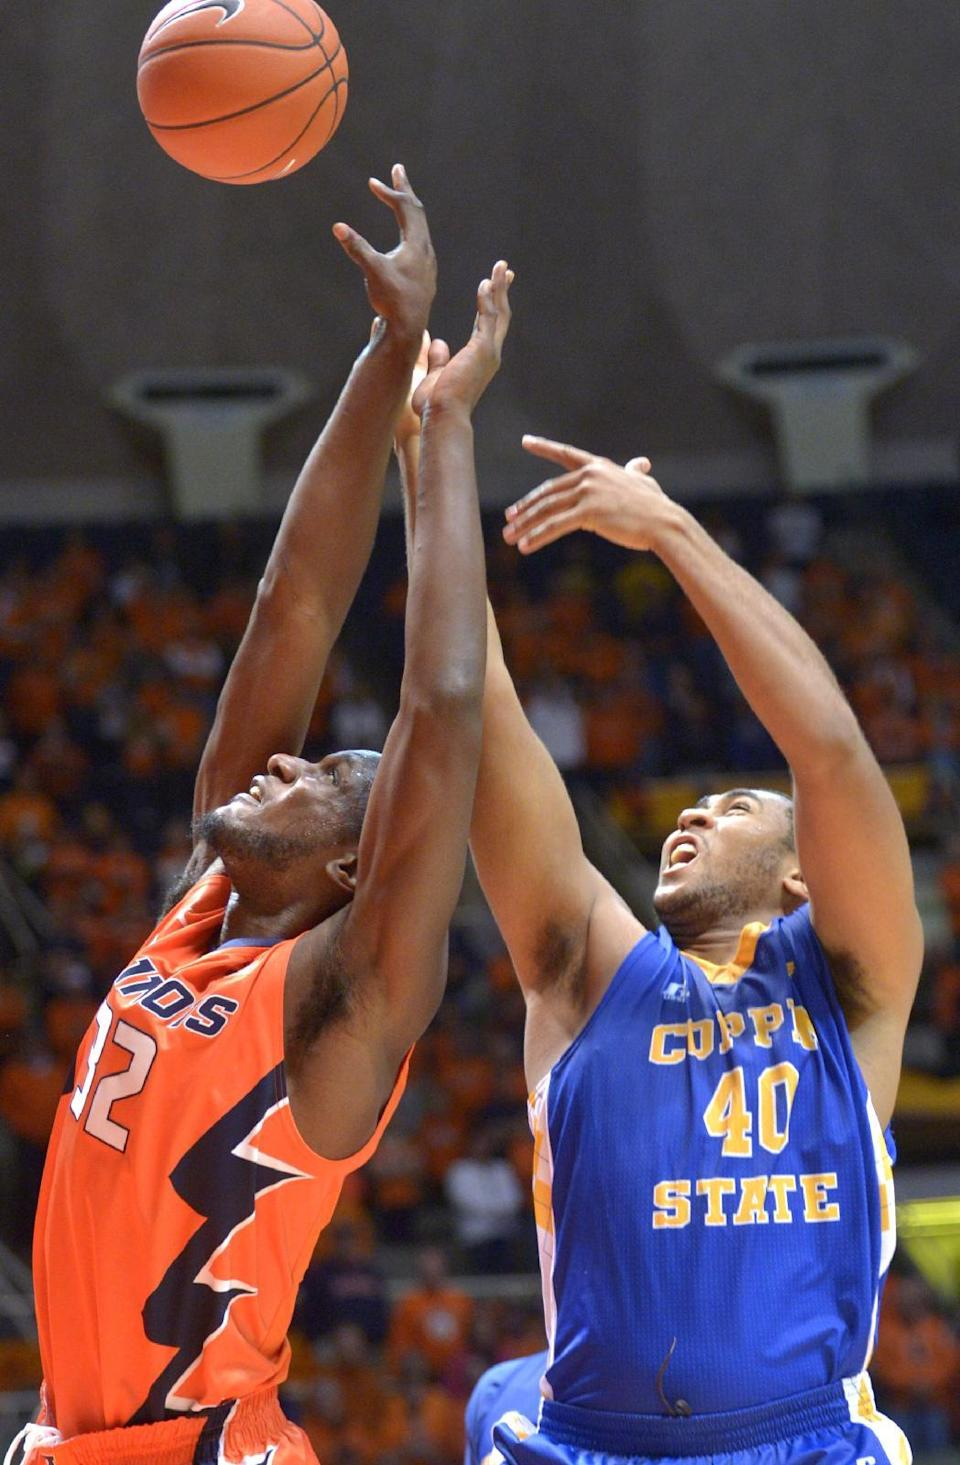 Illinois' forward/center Nnanna Egwu (32) and Coppin State's forward Brandon St. Louis (40) go up for a rebound during an NCAA college basketball game in Champaign, Ill., on Sunday, Nov. 16, 2014. (AP Photo/Robin Scholz)